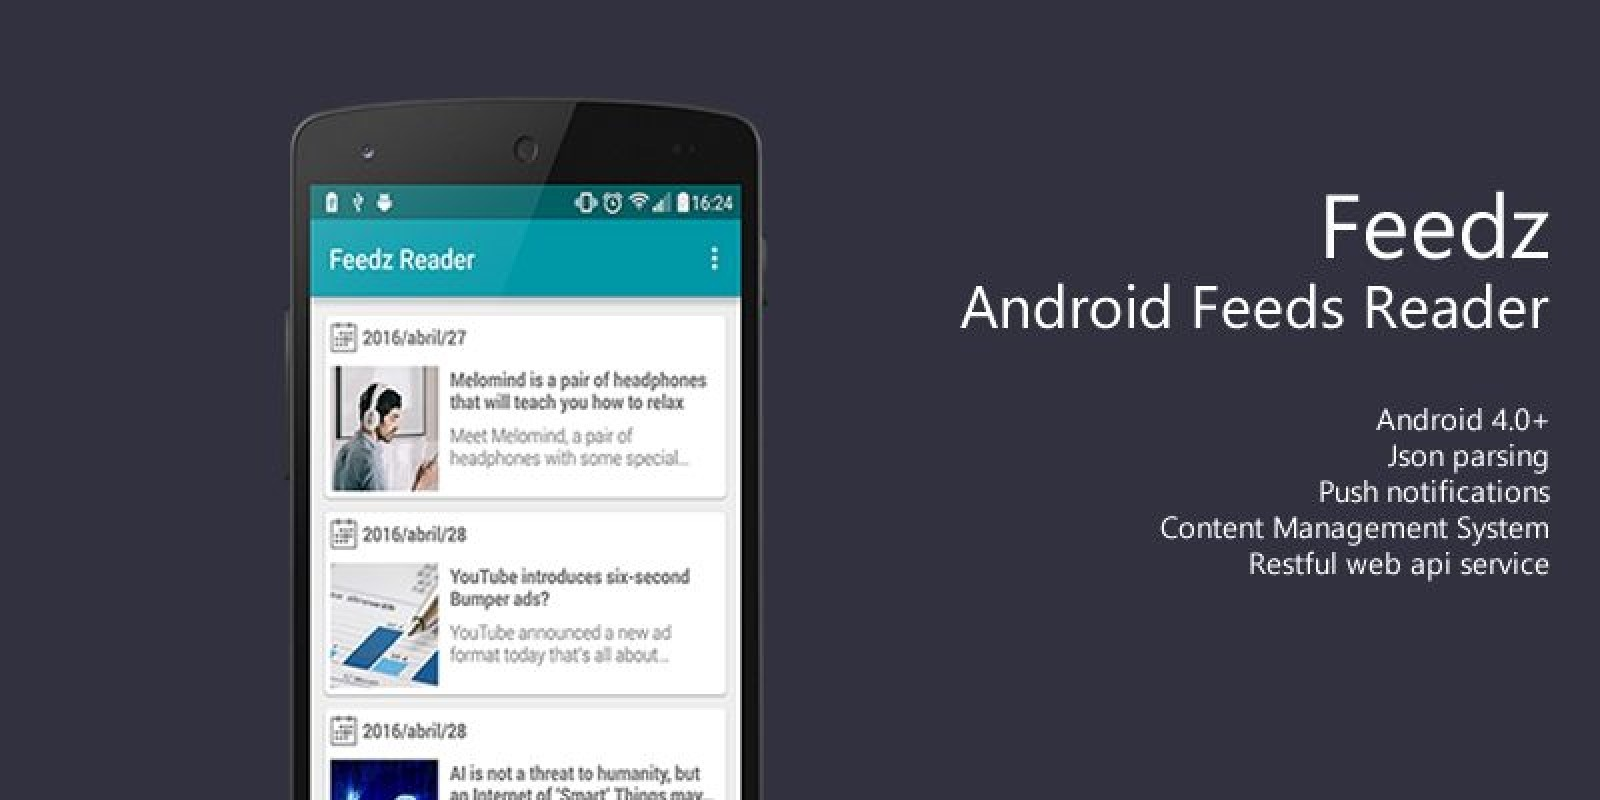 Making Android for everyone